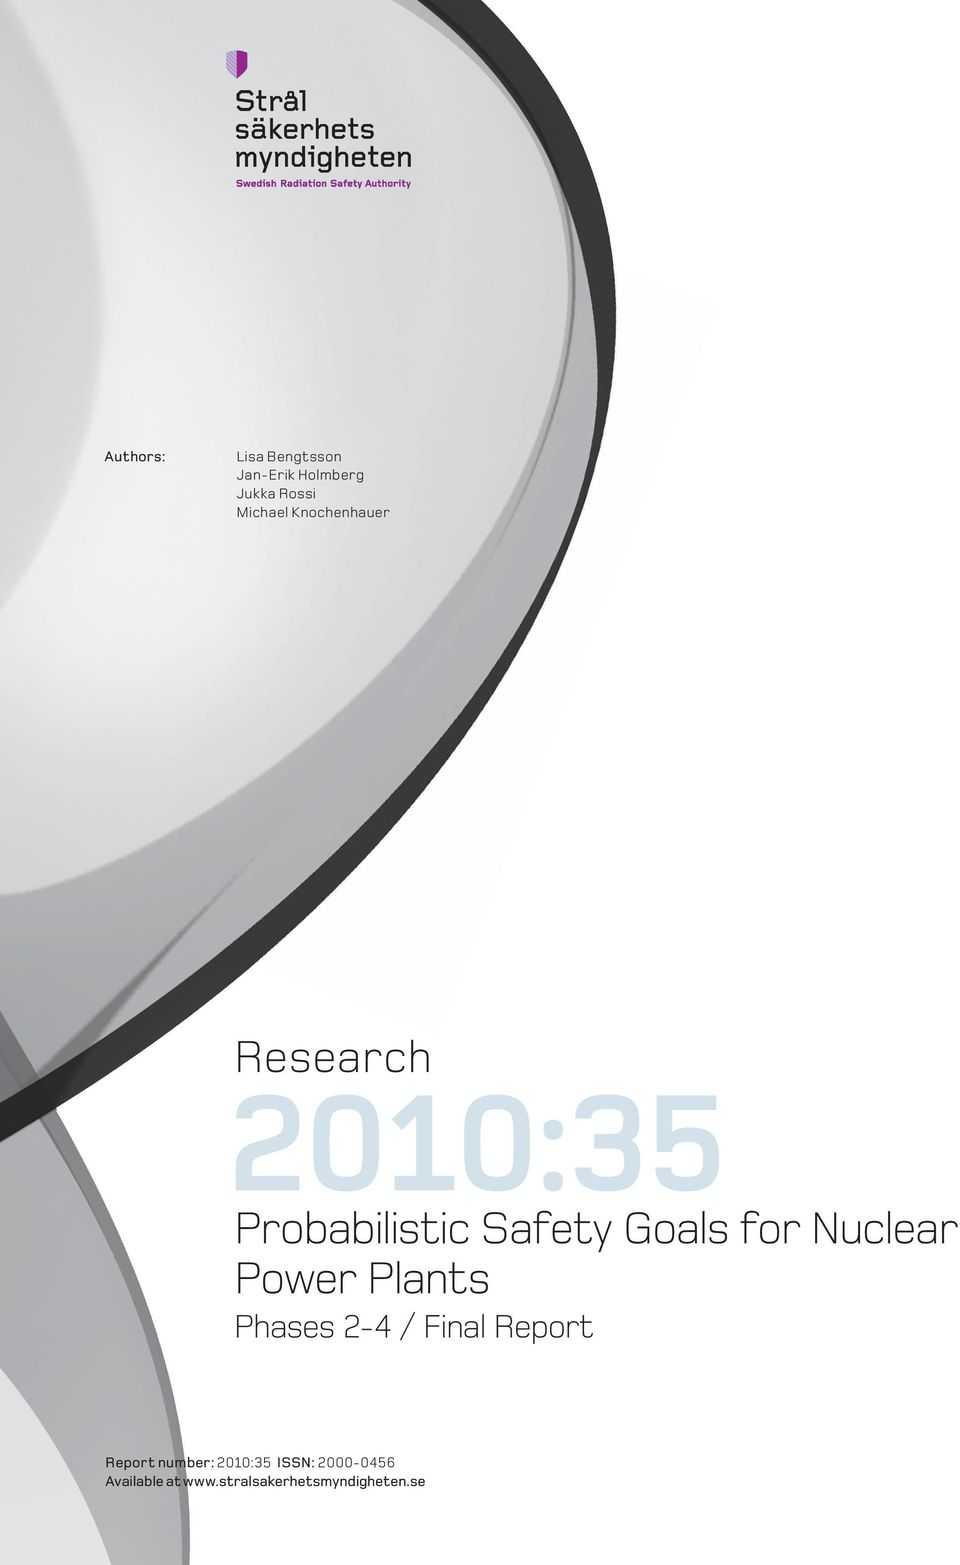 Nuclear Power Plants Phases 2-4 / Final Report Report number: